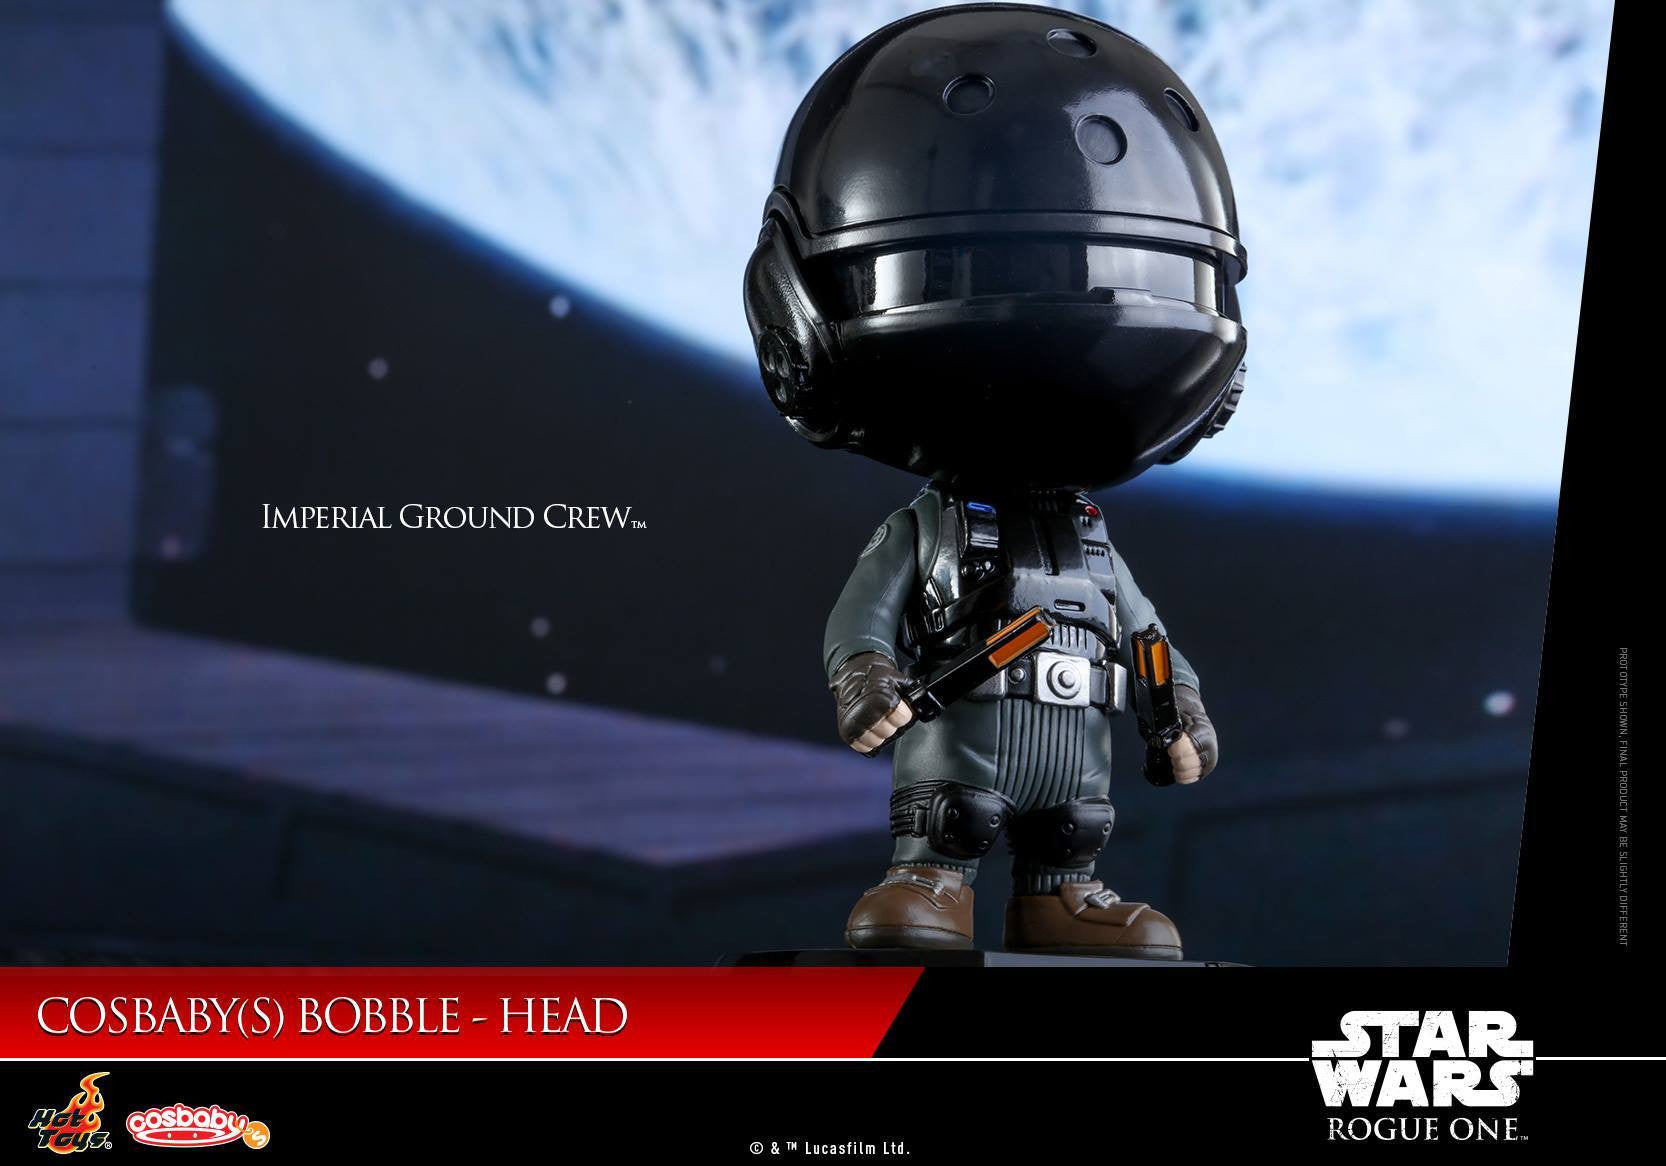 (IN STOCK) Hot Toys - COSB335 - Rogue One: A Star Wars Story - Cosbaby Bobble-Head (Series 1) Set of 6 - Marvelous Toys - 15